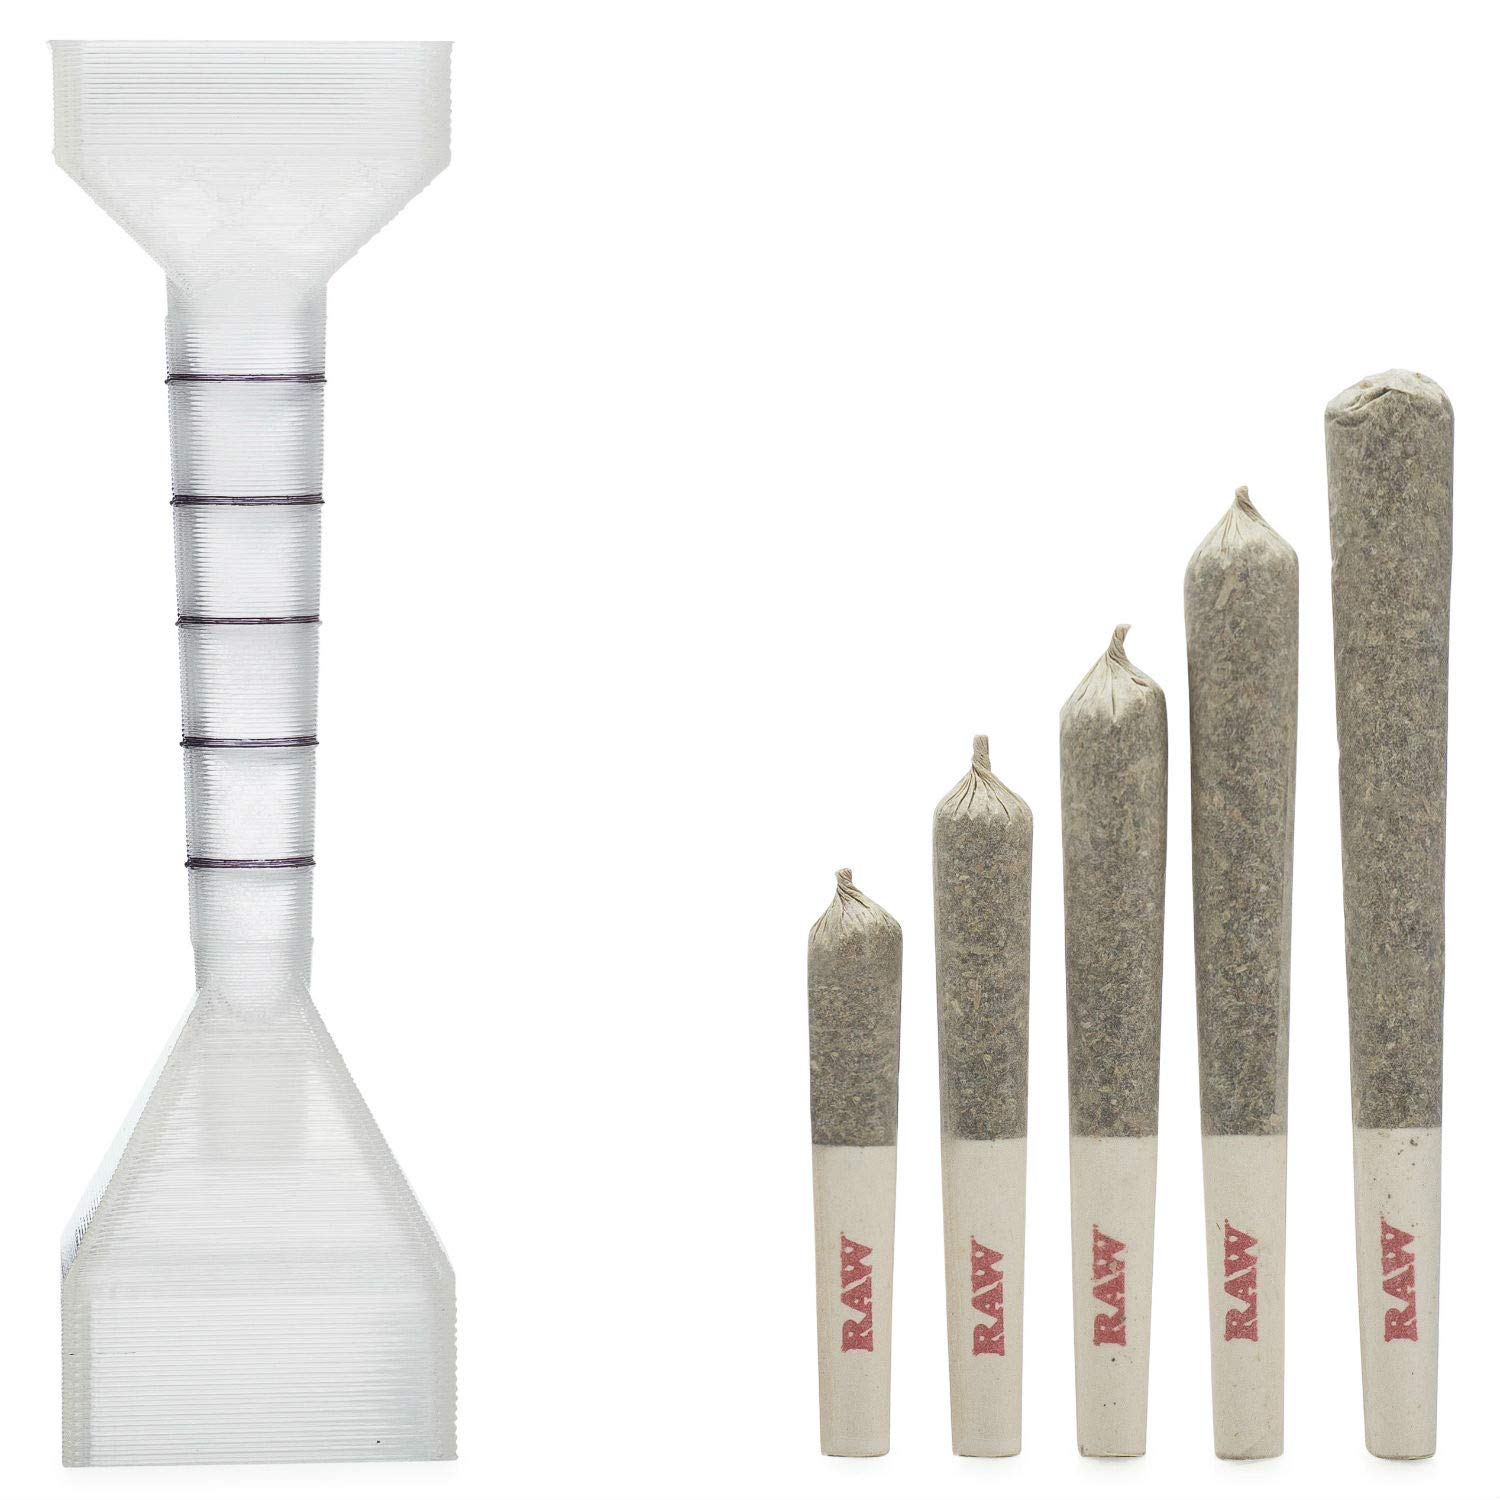 Cigarette Rolling Machine Loader Roller Filler. Made for RAW Cones Rolling Papers. Make Perfect Cigarettes. Includes: 20 Organic Hemp 1 1/4 RAW Cones (Pre Rolled) and Wooden Packing Stick. packNpuff by packNpuff